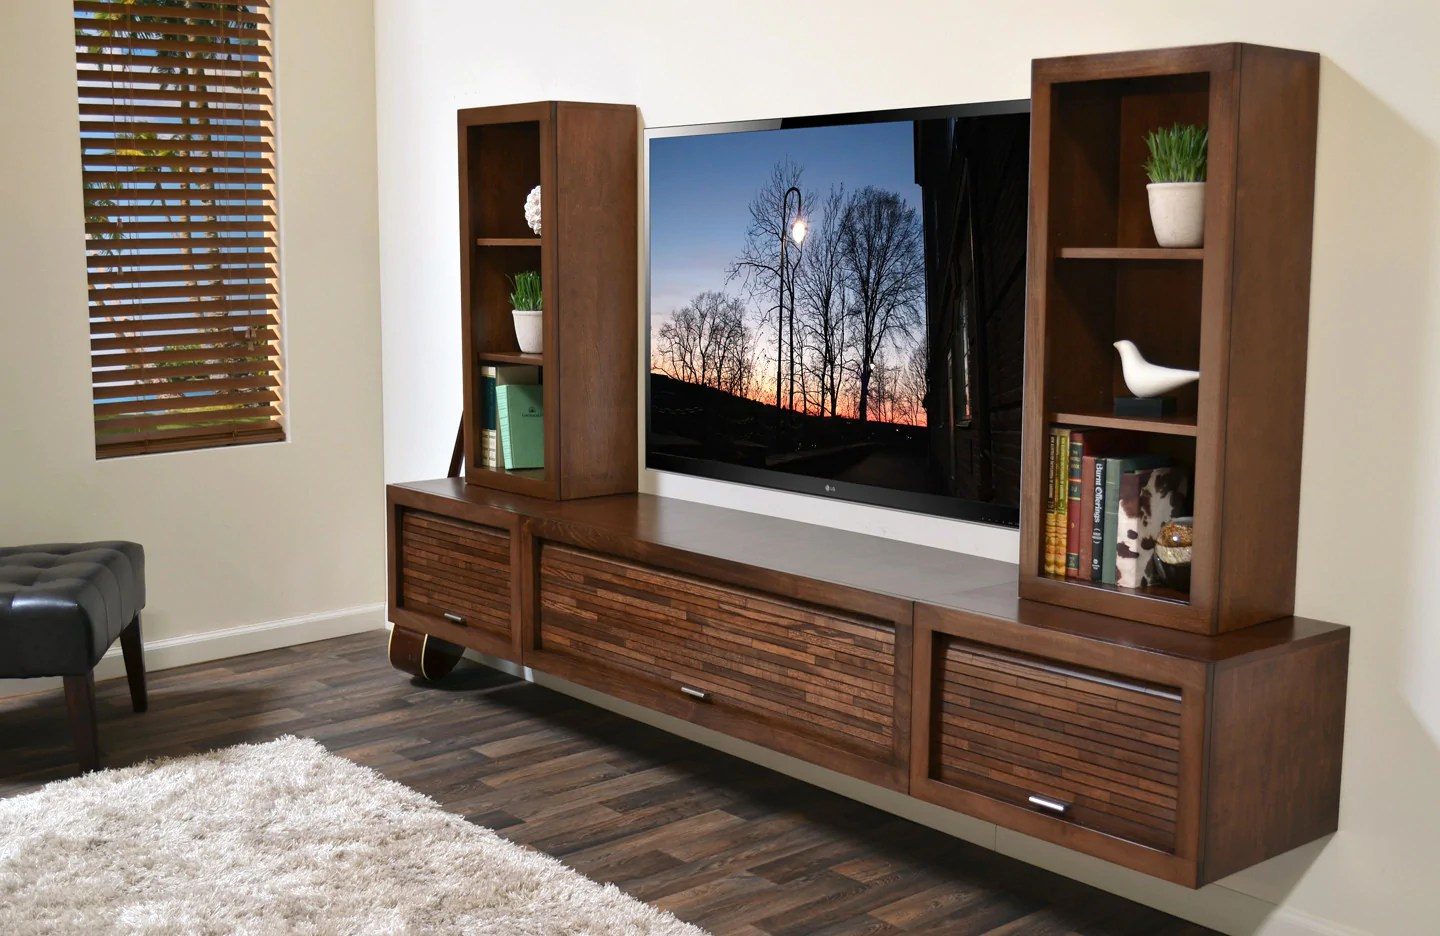 Floating Entertainment Center Wall Mount Tv Stand - Eco